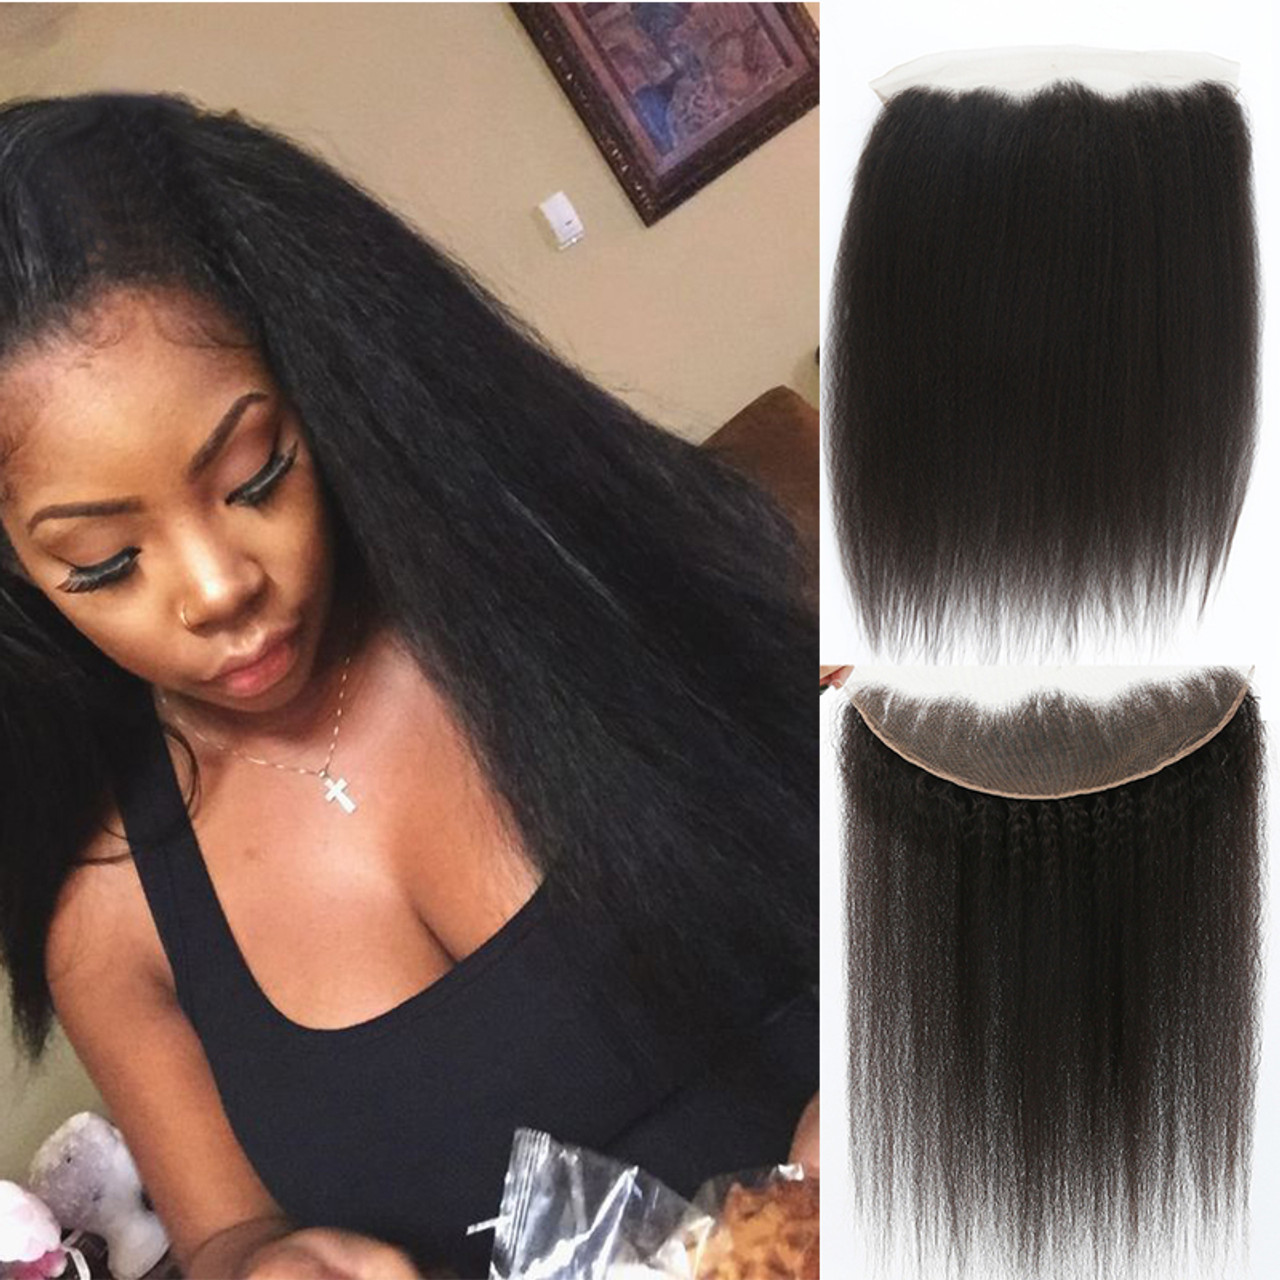 -Brazilian-Lace-Frontal-Closures-13x4-Ear-to-Ear-Kinky-Straight-Lace -Closures-With-Baby-Hair-1  23067.1472023715.jpg c 2 imbypass on f237e72ed